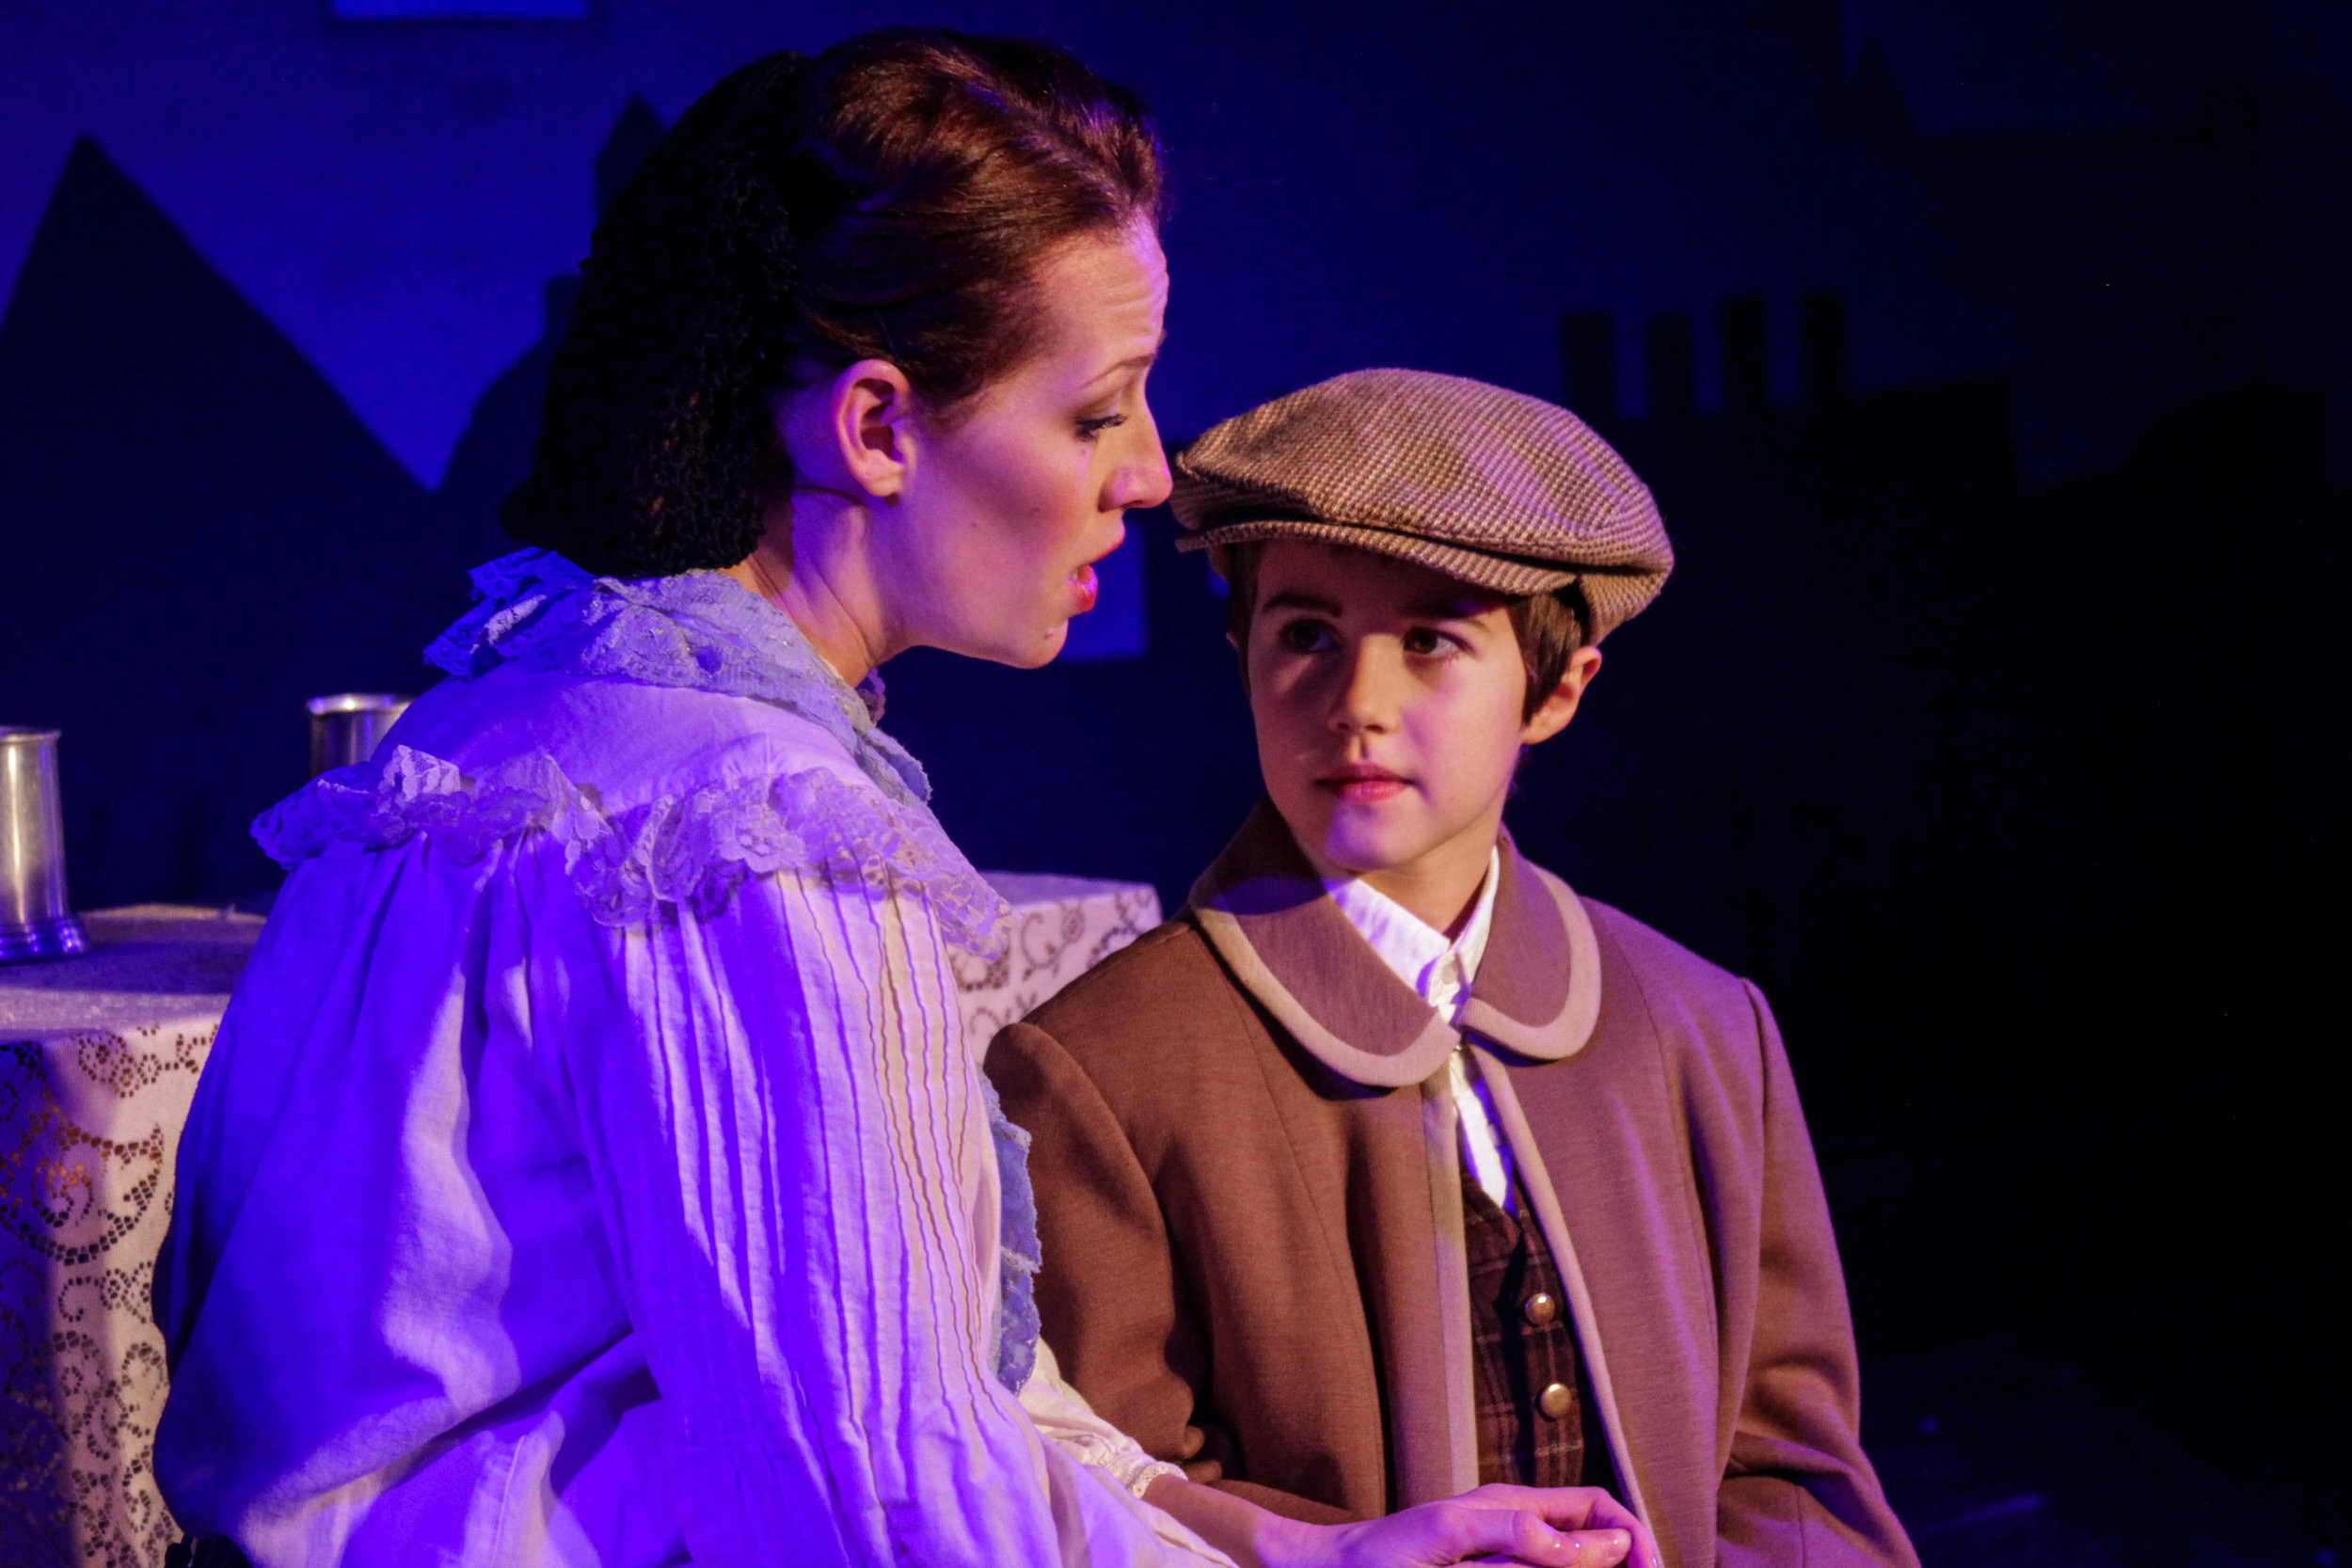 """Mrs. Cratchit (Cayla Anderson) sings to Tiny Tim (Tyler Earnest) the tender song """"The Winter Will Soon Be Over"""" in a scene from Lake Country Playhouse's 'A Christmas Carol."""""""